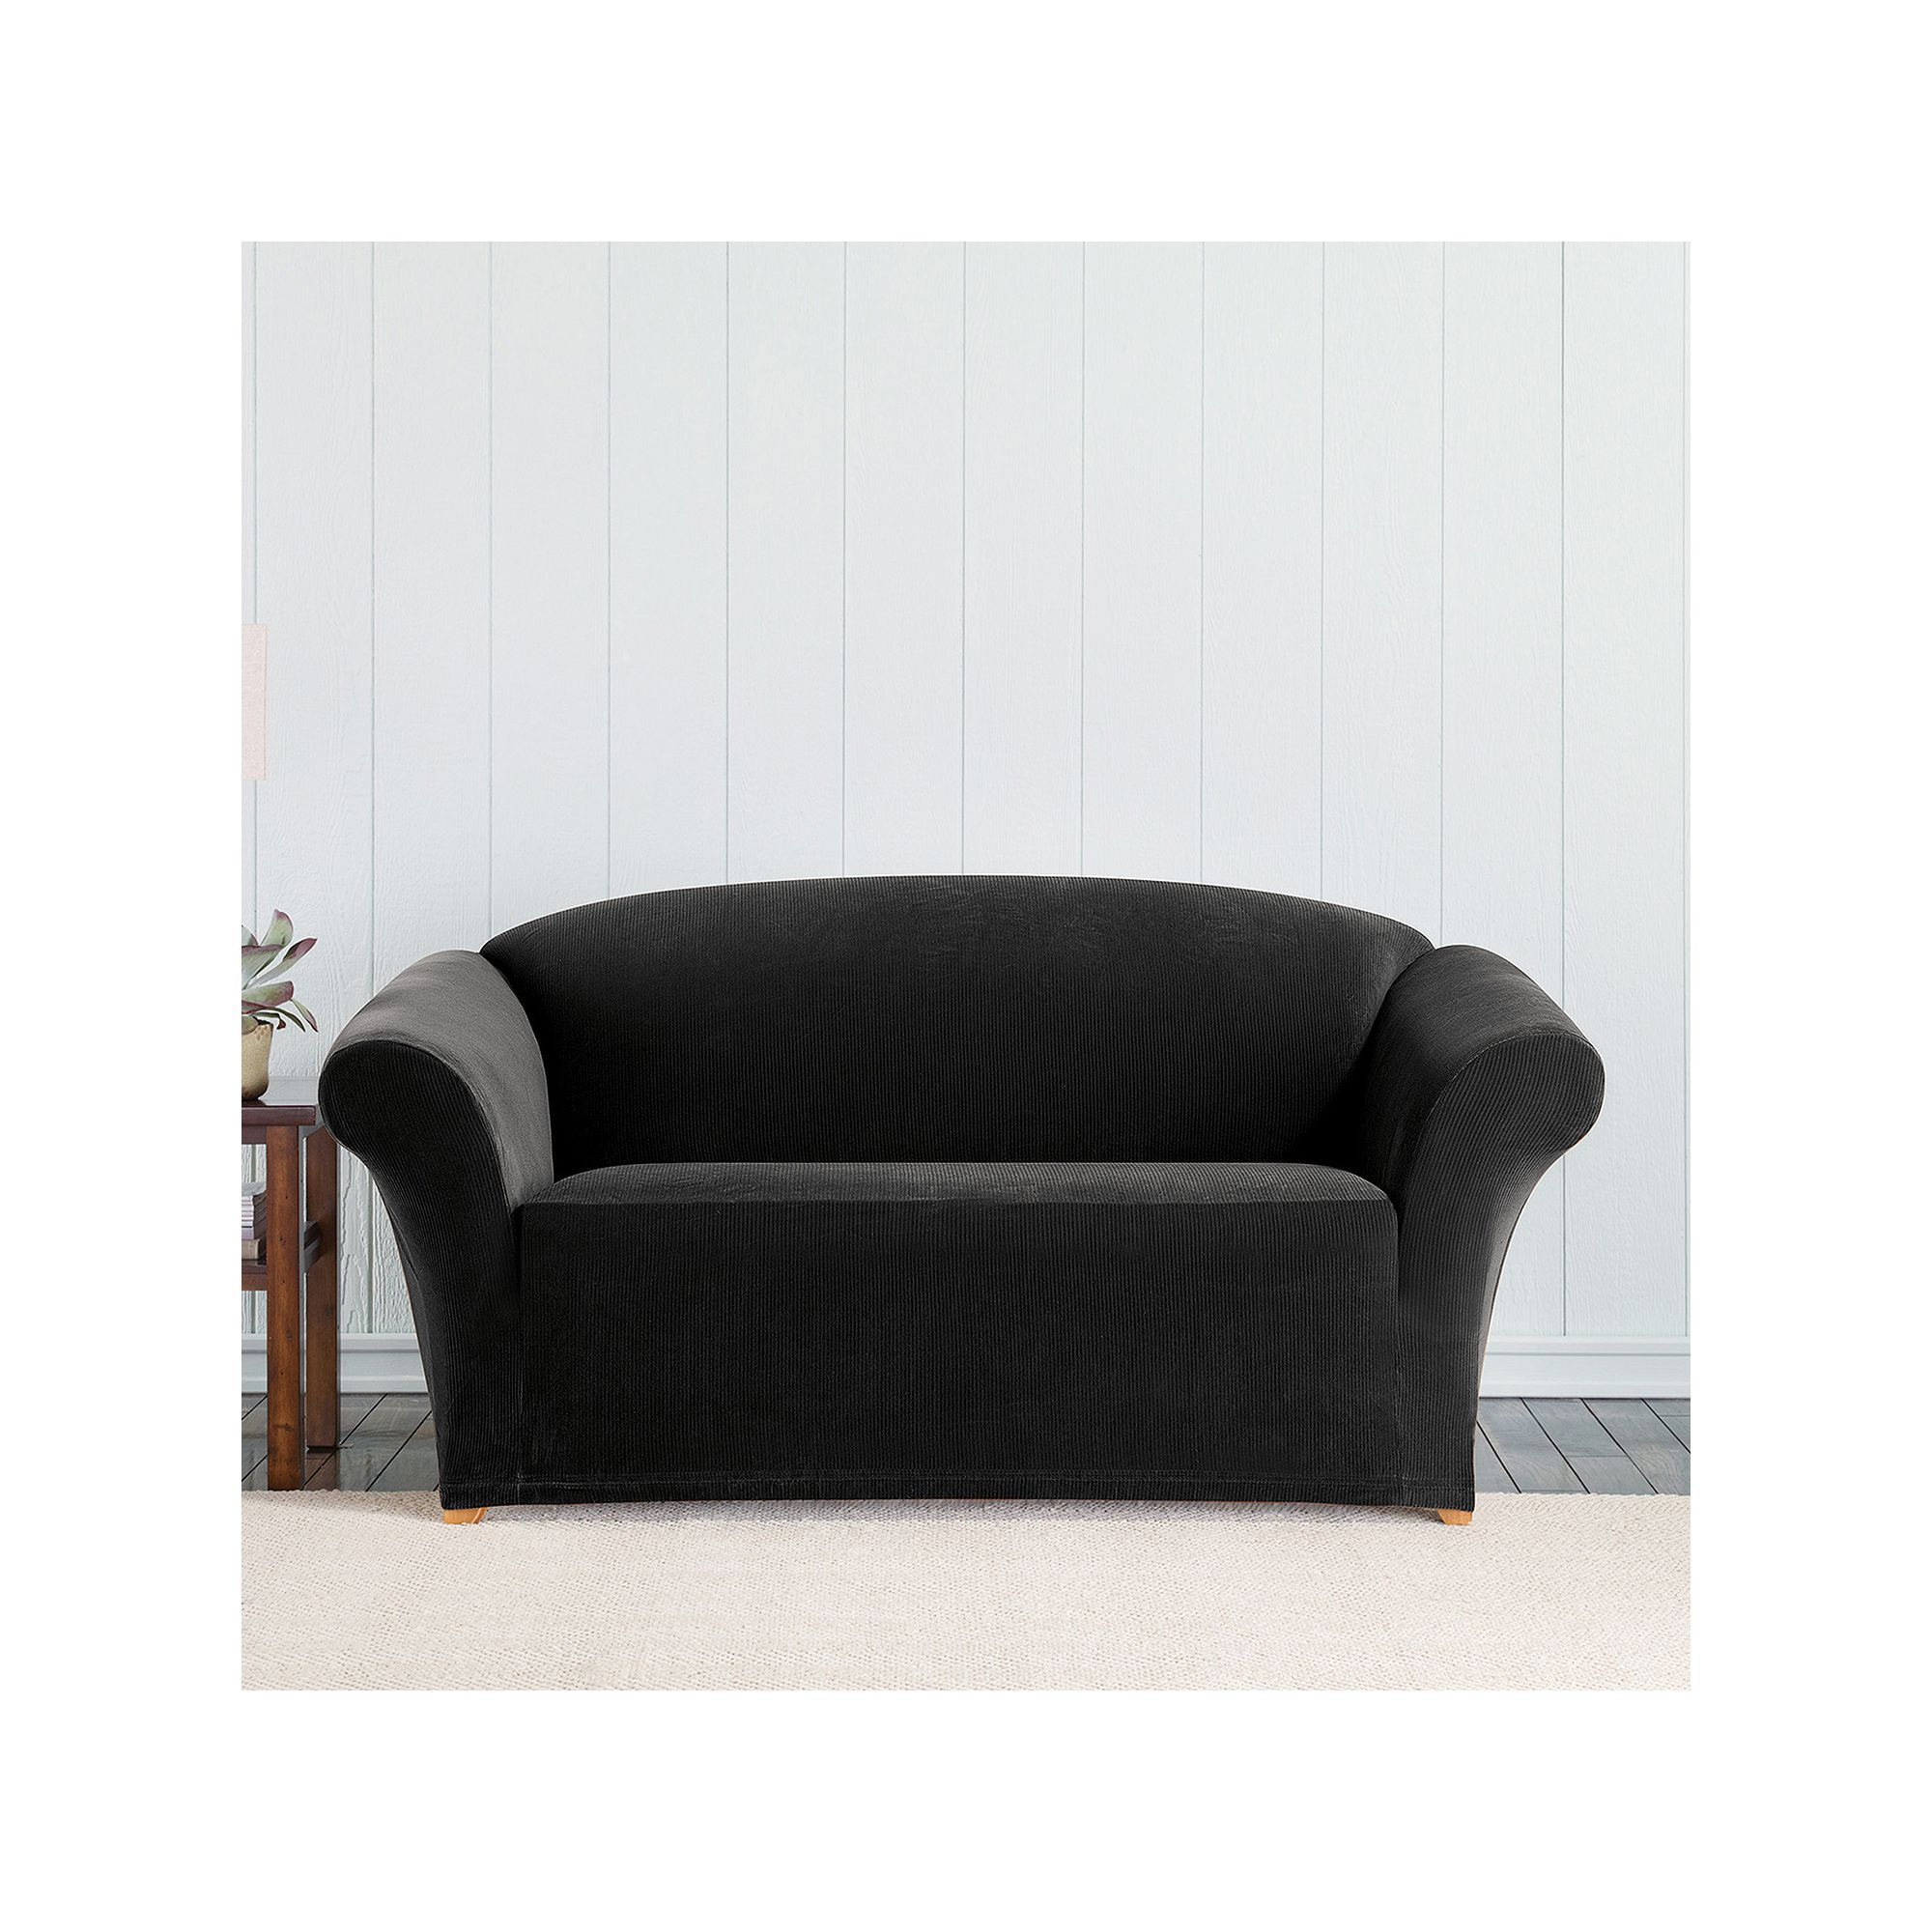 Stupendous Sure Fit Stretch Pixel Corduroy Loveseat Slipcover Uwap Interior Chair Design Uwaporg